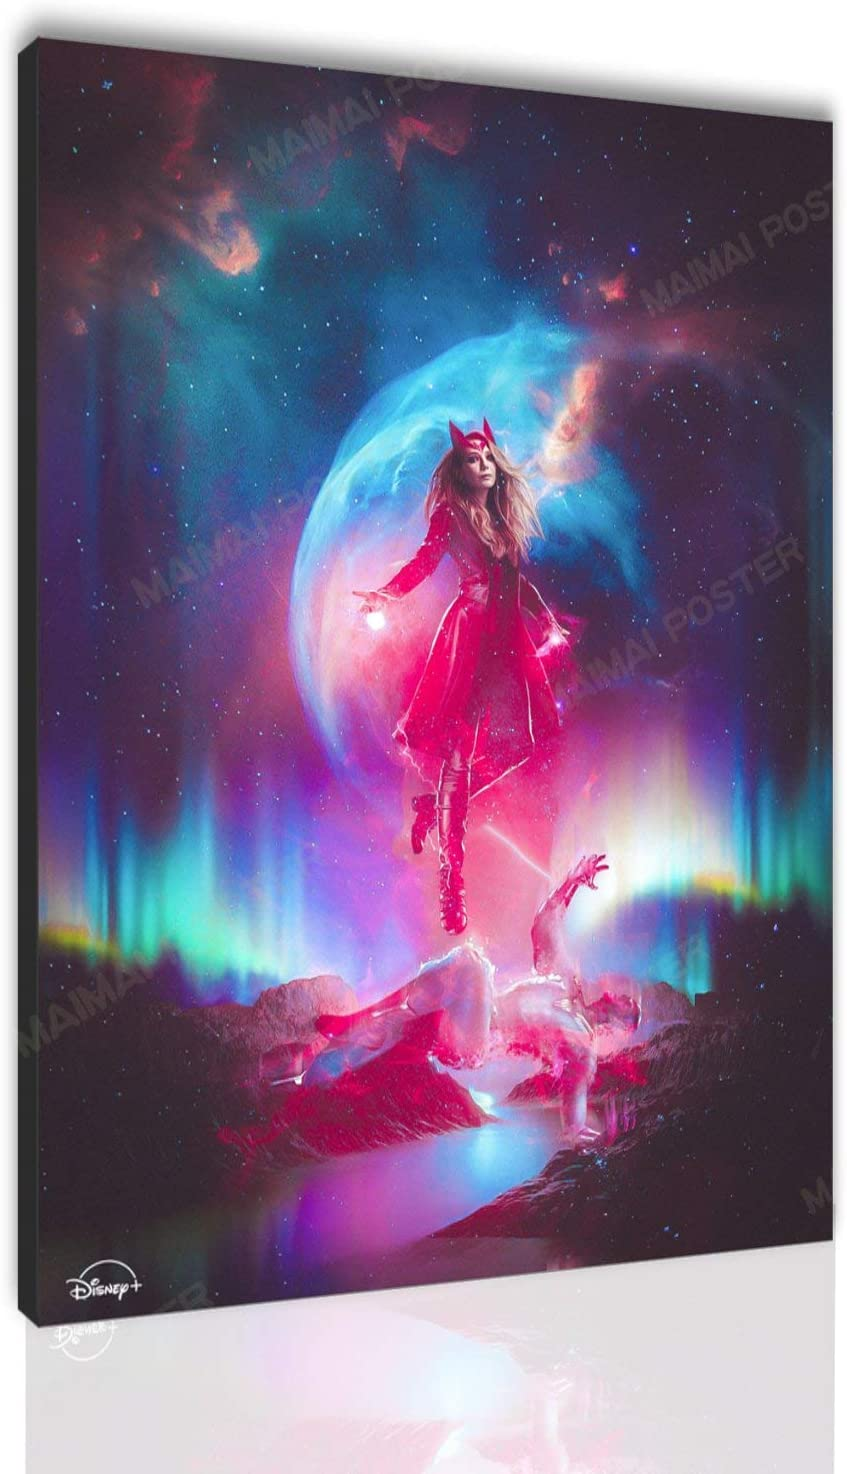 Wanda Vision Canvas 本物 Posters 完売 Scarlet Witch HD Movie Poster Print